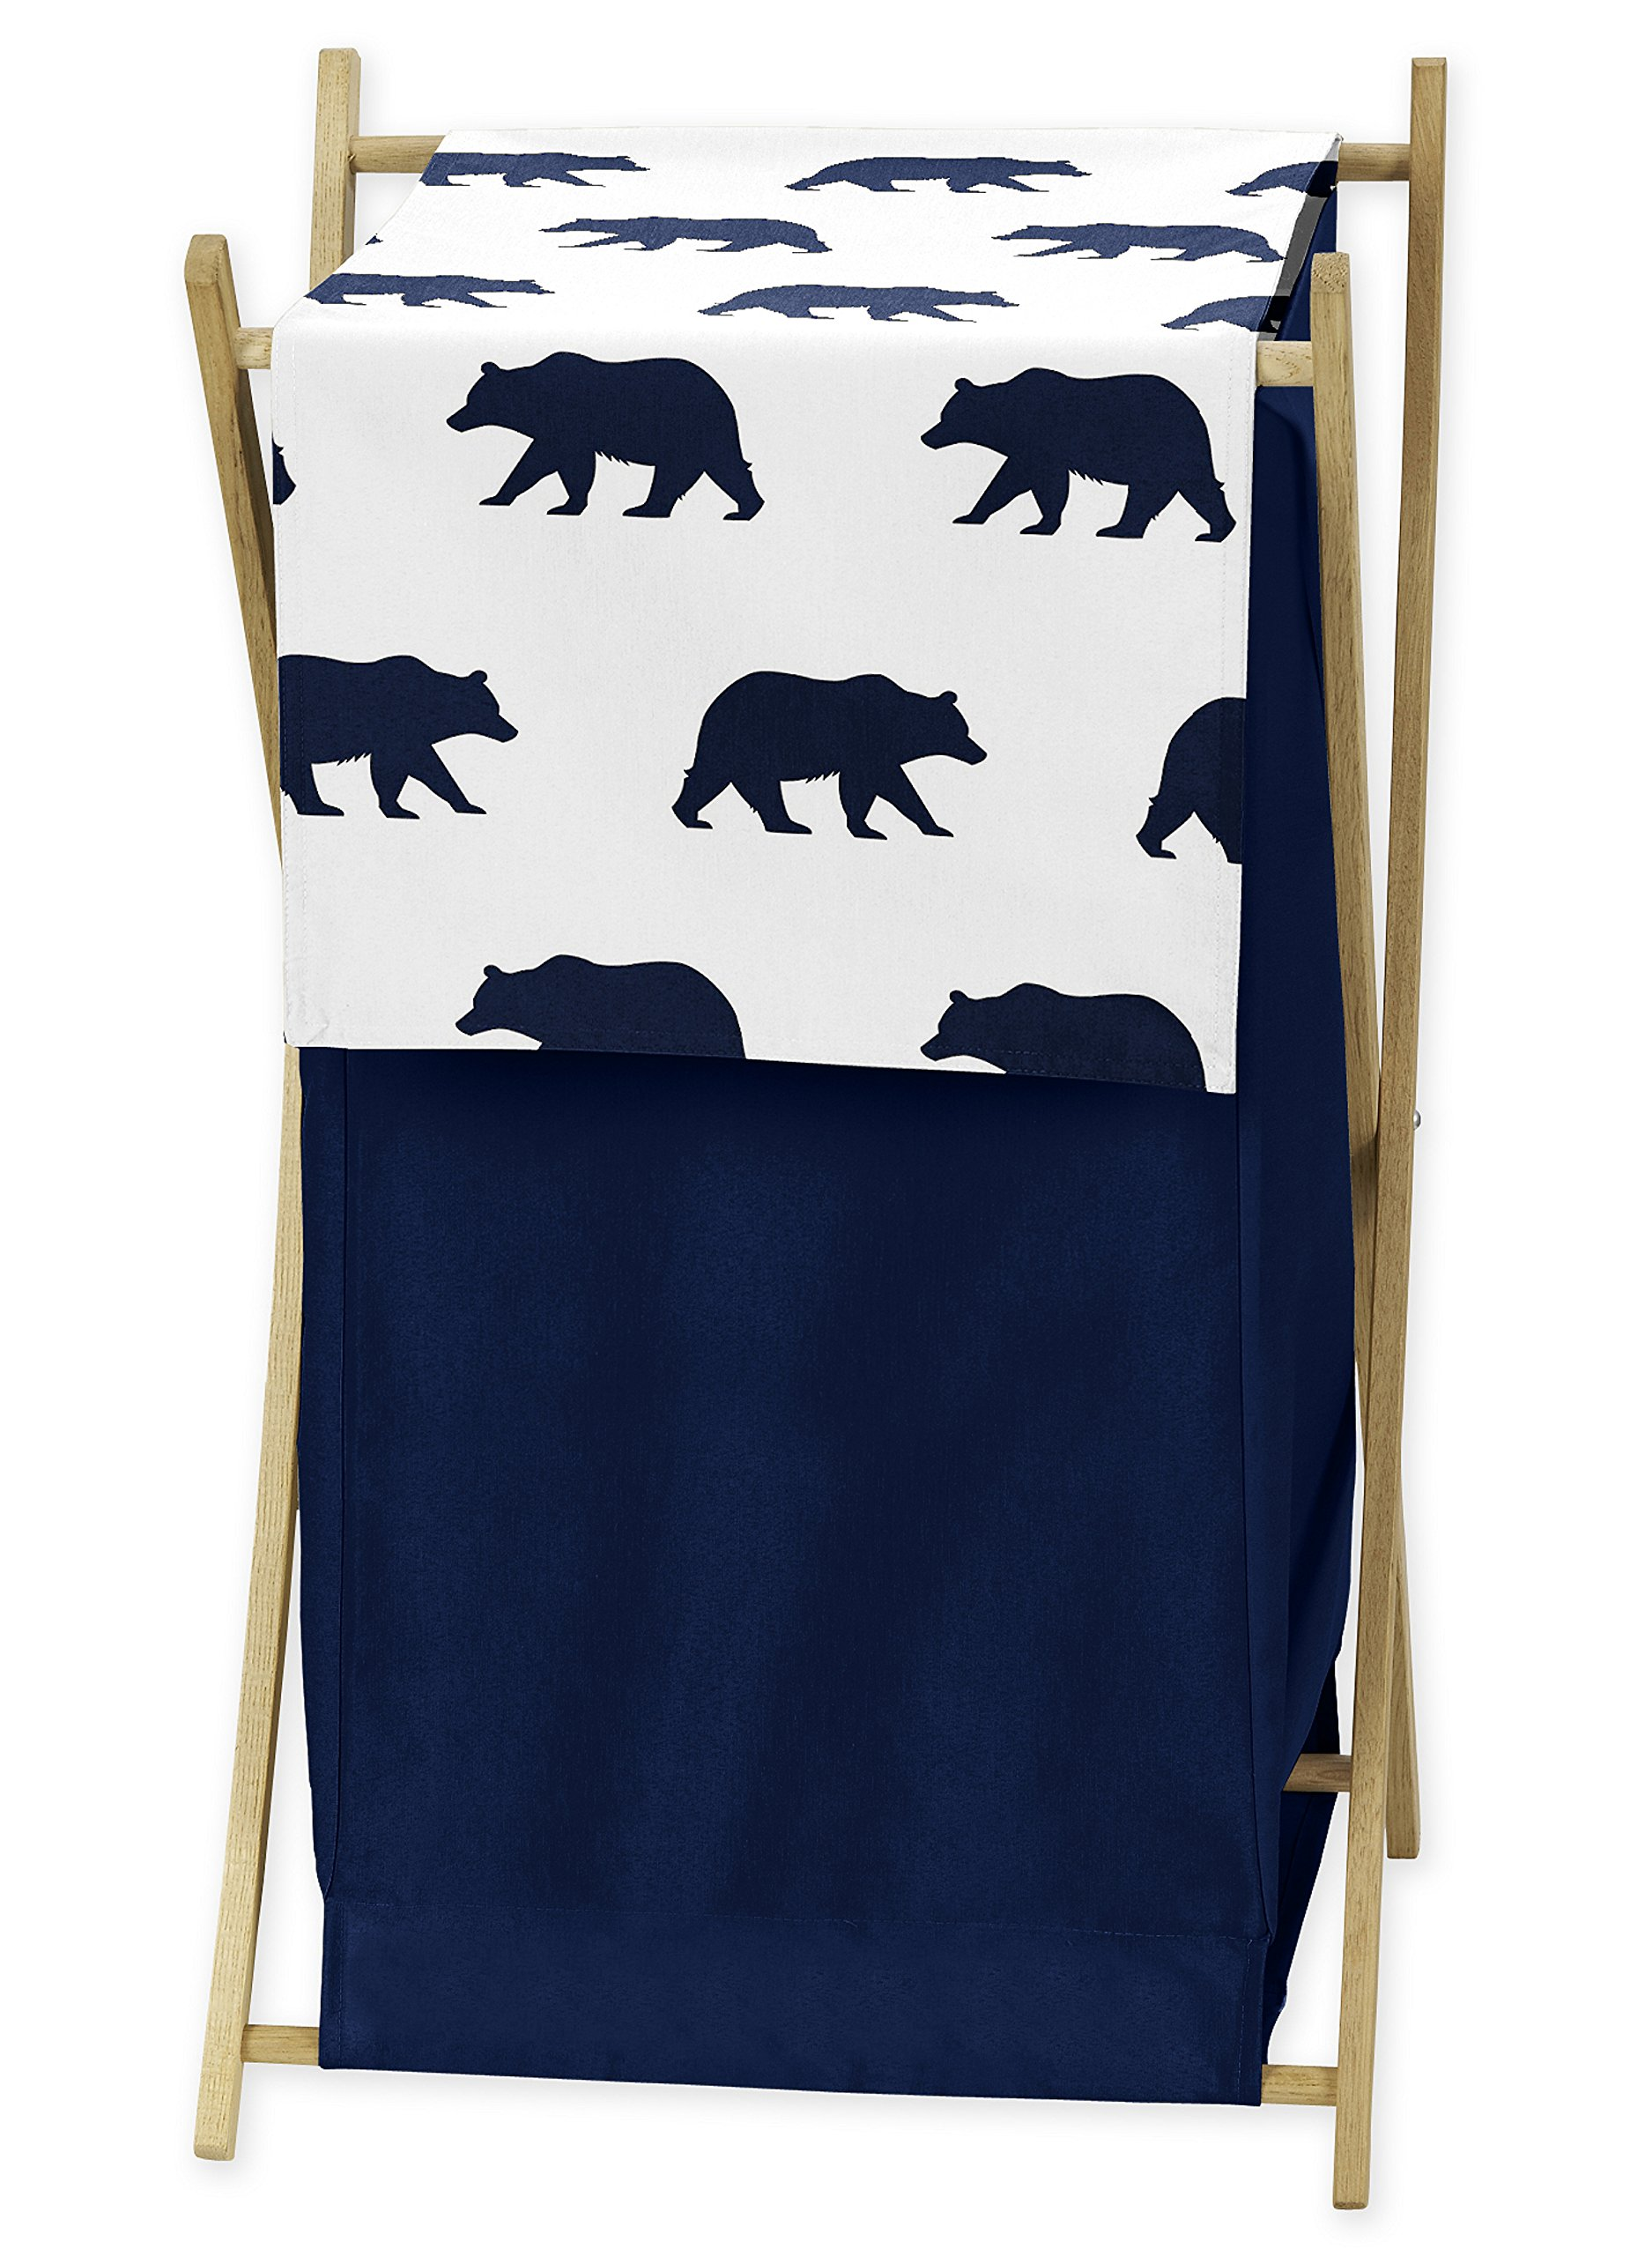 Sweet Jojo Designs Navy Blue and White Baby Kid Clothes Laundry Hamper for Big Bear Collection by